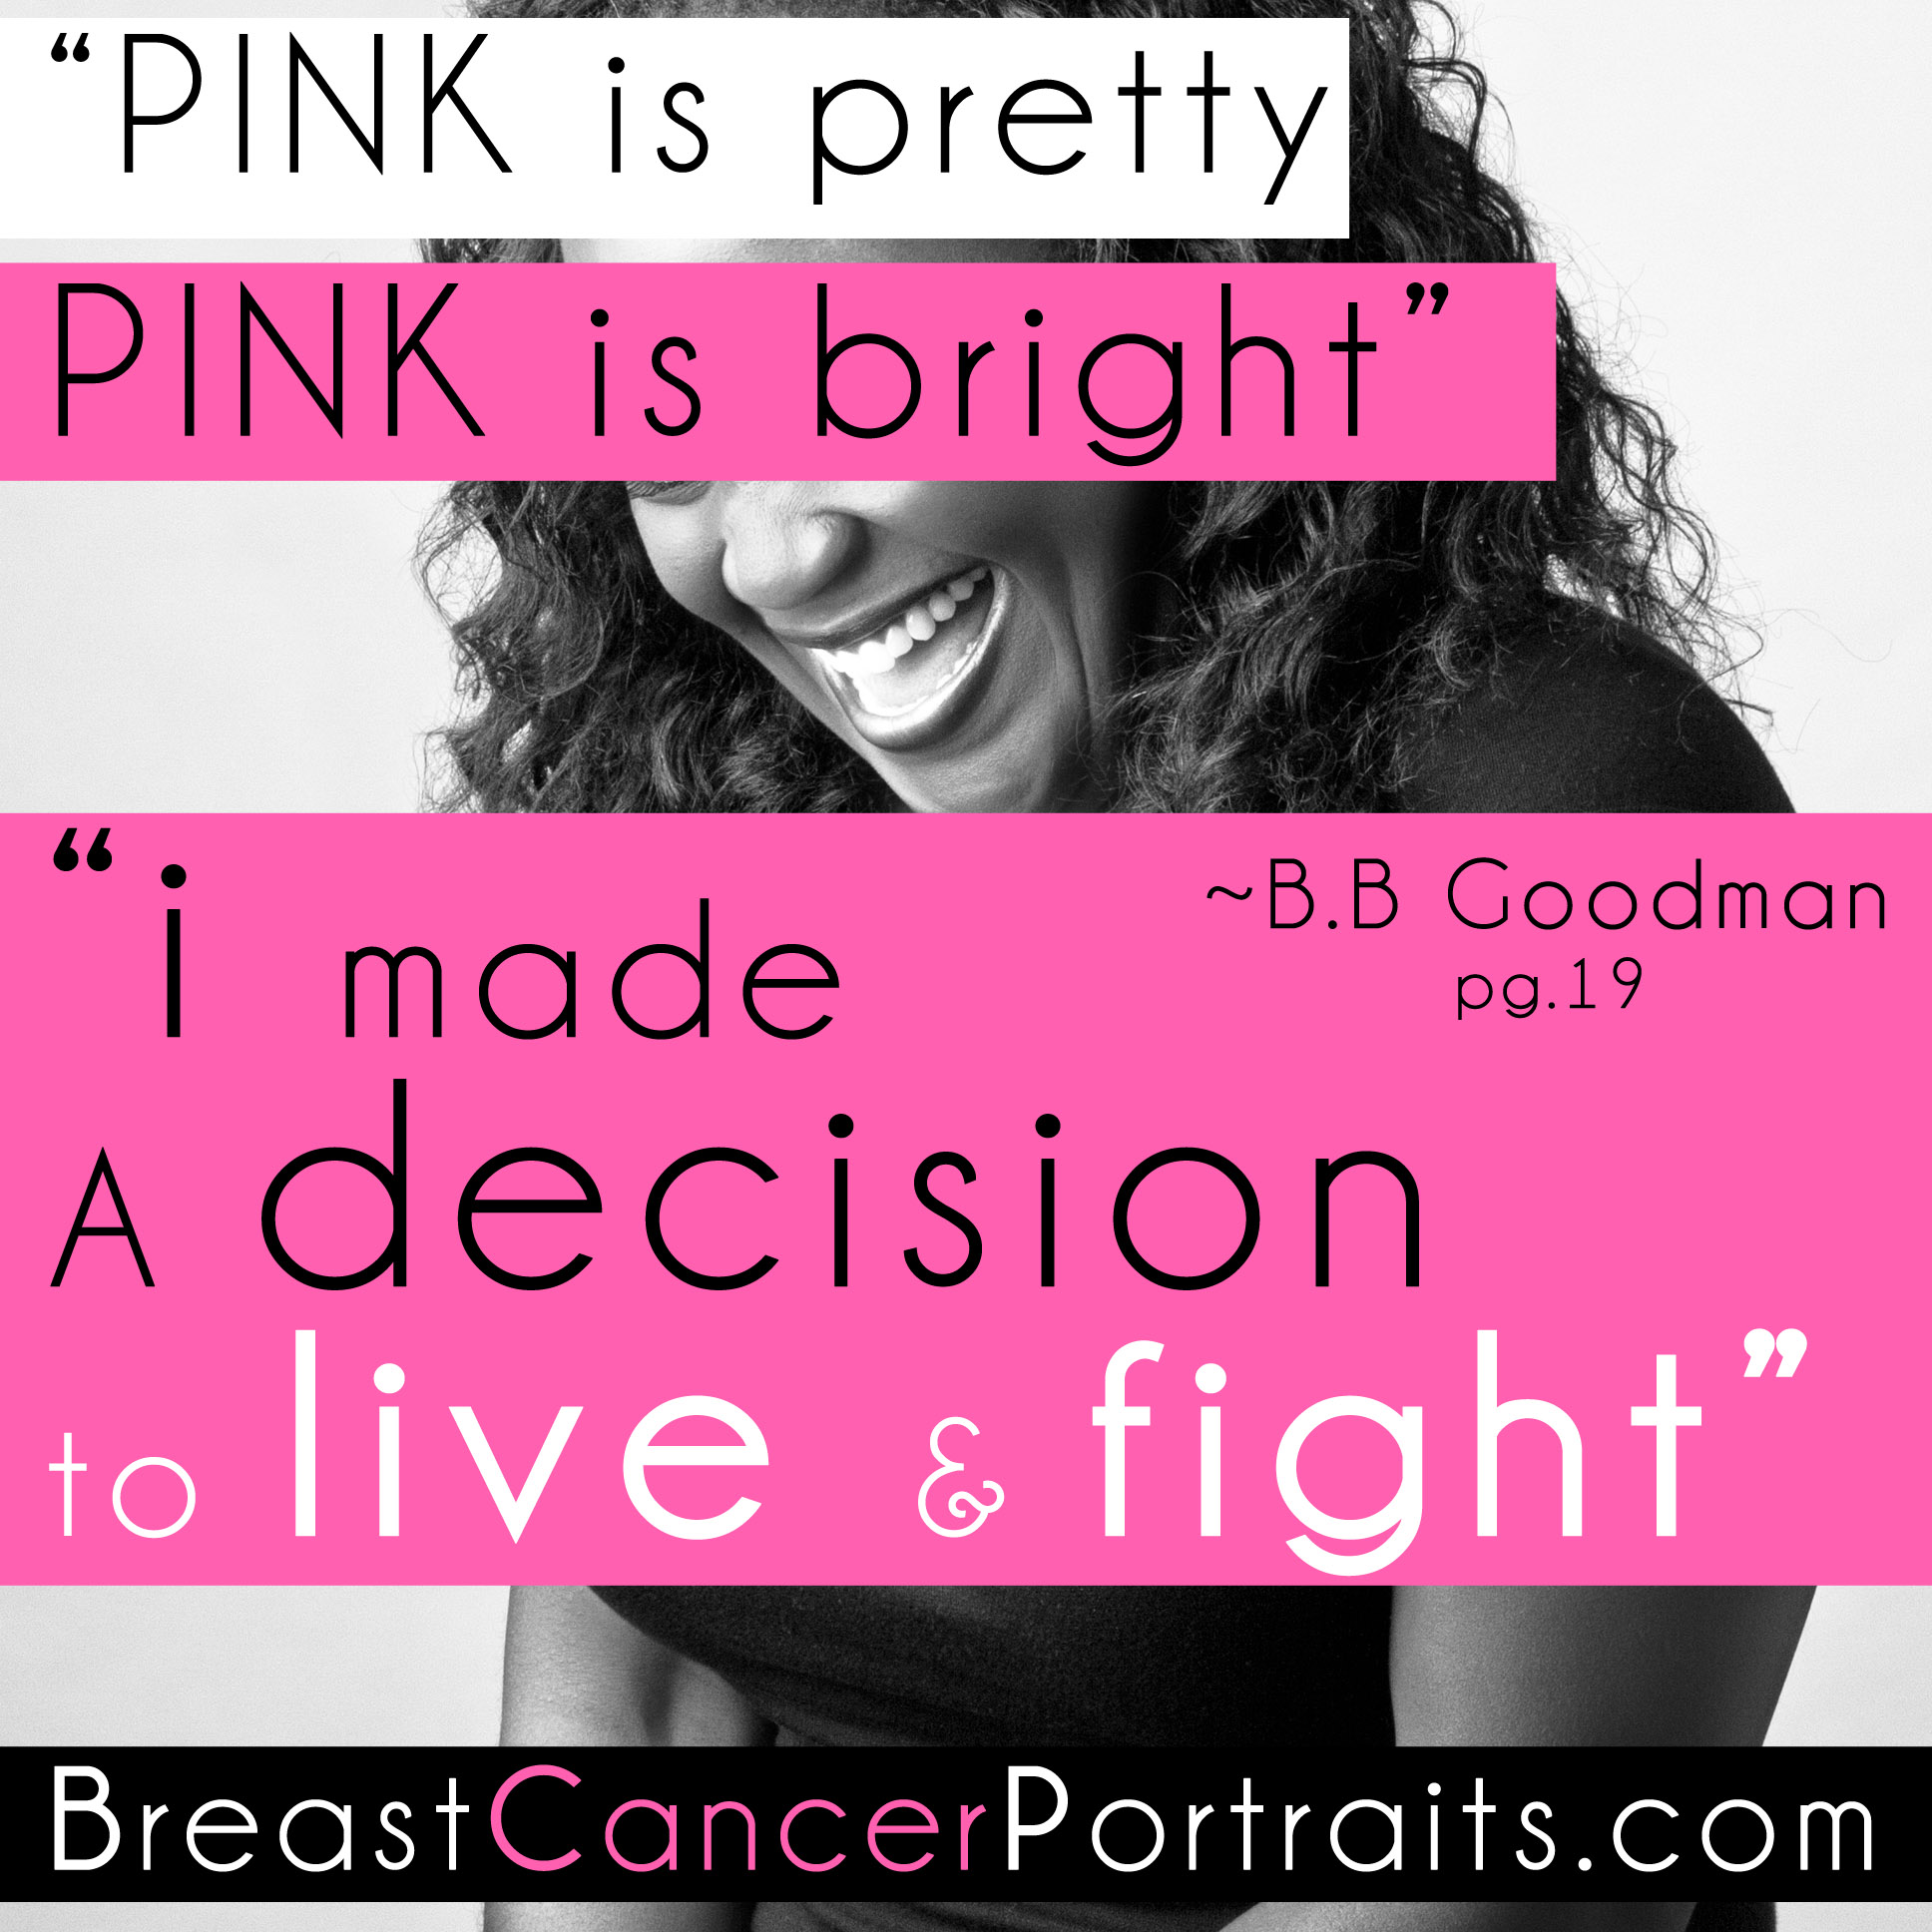 Fight Cancer Quotes Inspirational Quotes And Photos Of Breast Cancer Survivors